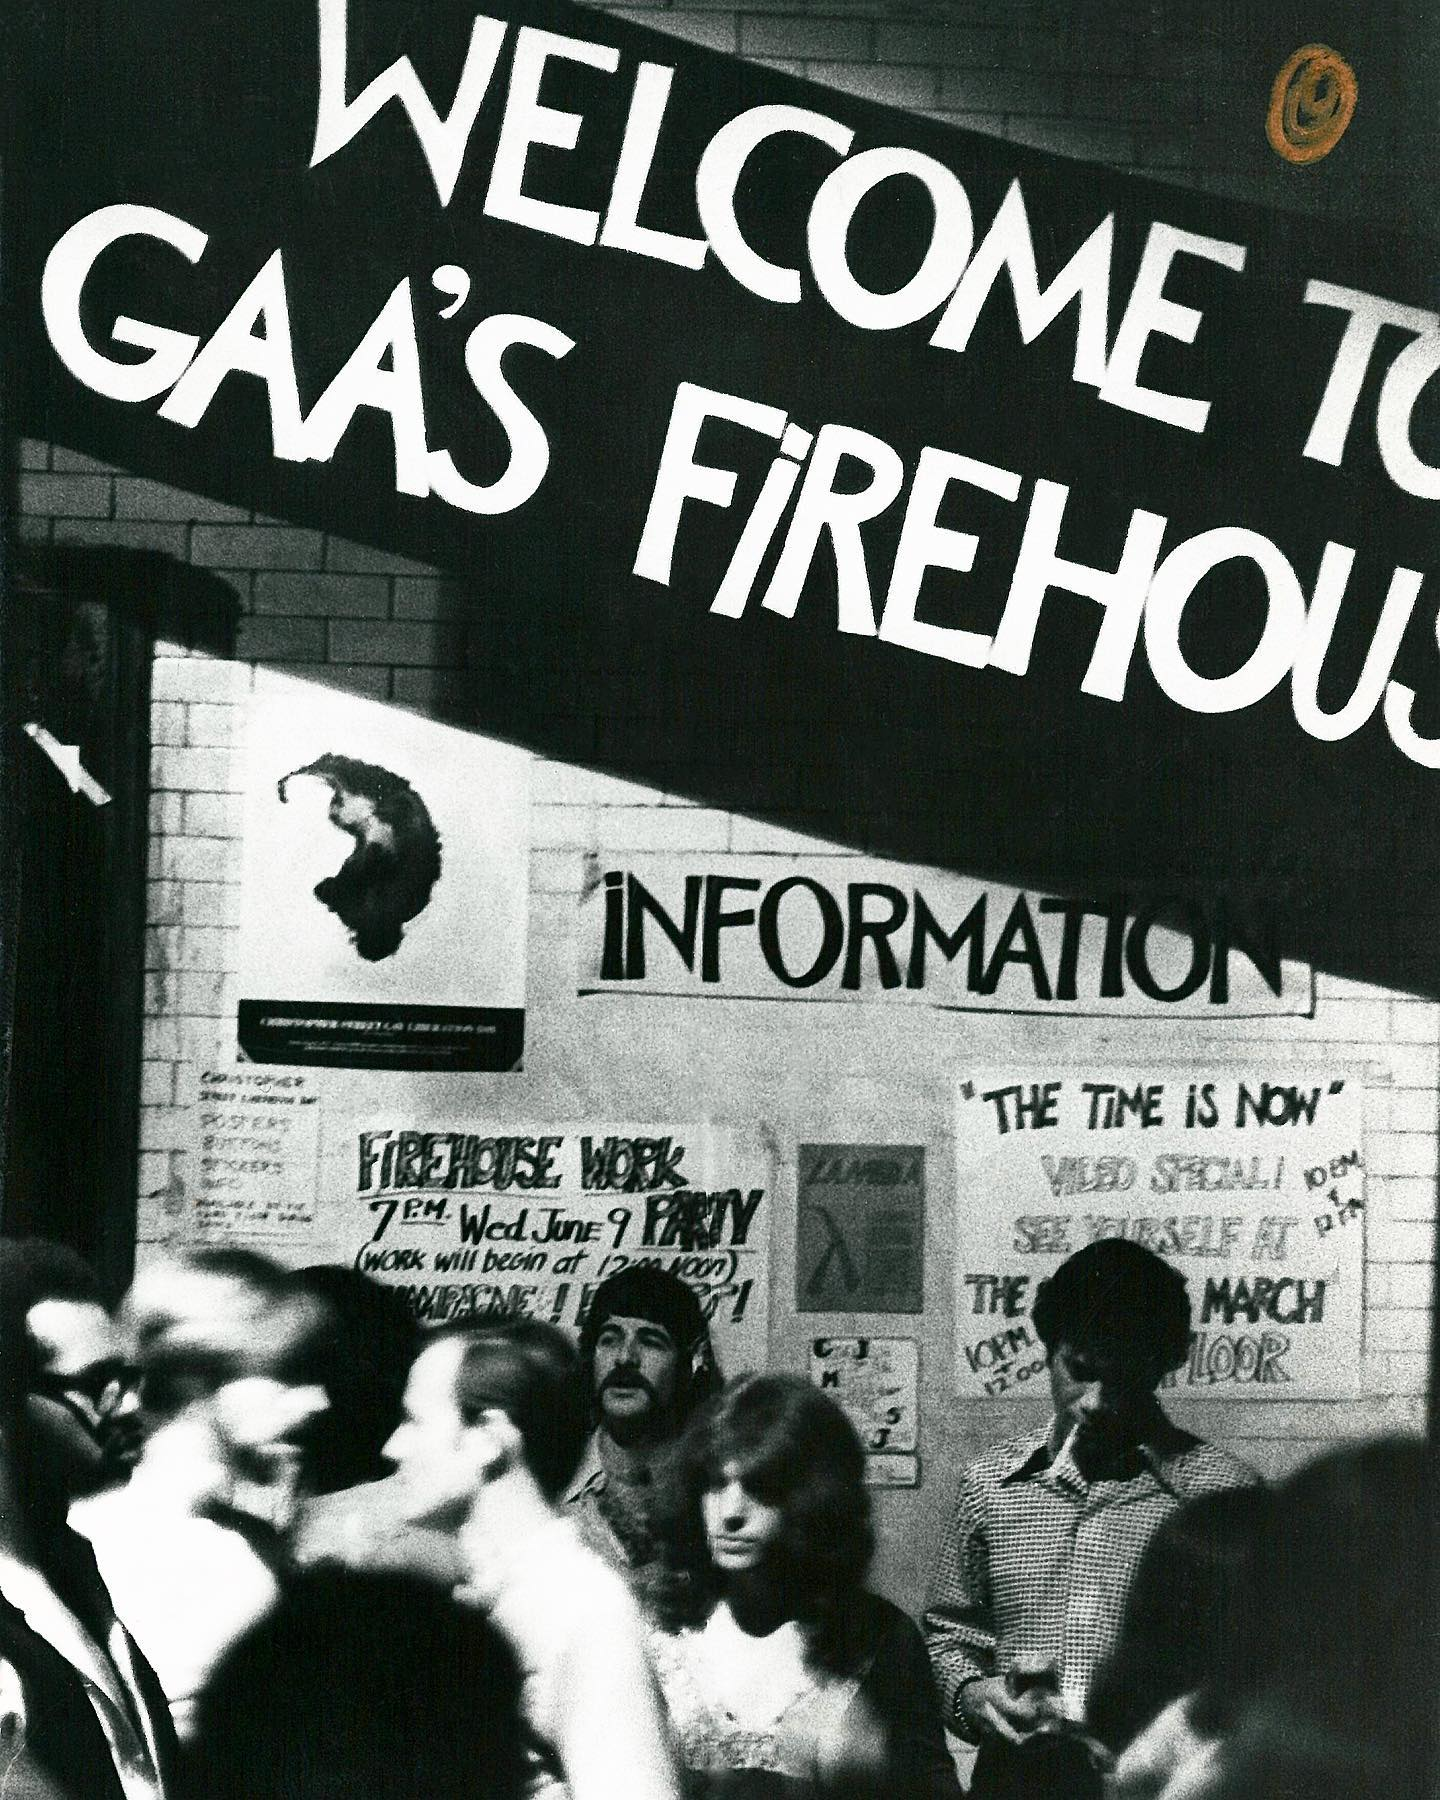 """The Gay Activist Alliance was formed six months after the events of the Stonewall Uprising, by dissident members of the Gay Liberation Front. In contrast to the very left-wing GLF which aligned itself with groups like the Black Panthers, the GAA defined itself as a single-issue and politically neutral group. The Alliance was most active throughout the 70s, performing """"zaps"""" or public demonstrations against institutions and public figures who engaged in homophobic discrimination.  Seen here is the GAA headquarters, the Firehouse, on June 11th, 1971. This location in Soho served as the organization's HQ from 1971 to 1974, and is now a NYC LGBT Historic Site. The Firehouse is remembered not only as an important political community center, but as the home of well-attended weekly dances and movie nights.  The interior of the Firehouse was destroyed by arson in October 1974, and the GAA was evicted. The organization relocated a few times before disbanding in 1981.  © Fred W. McDarrah/MUUS Collection"""